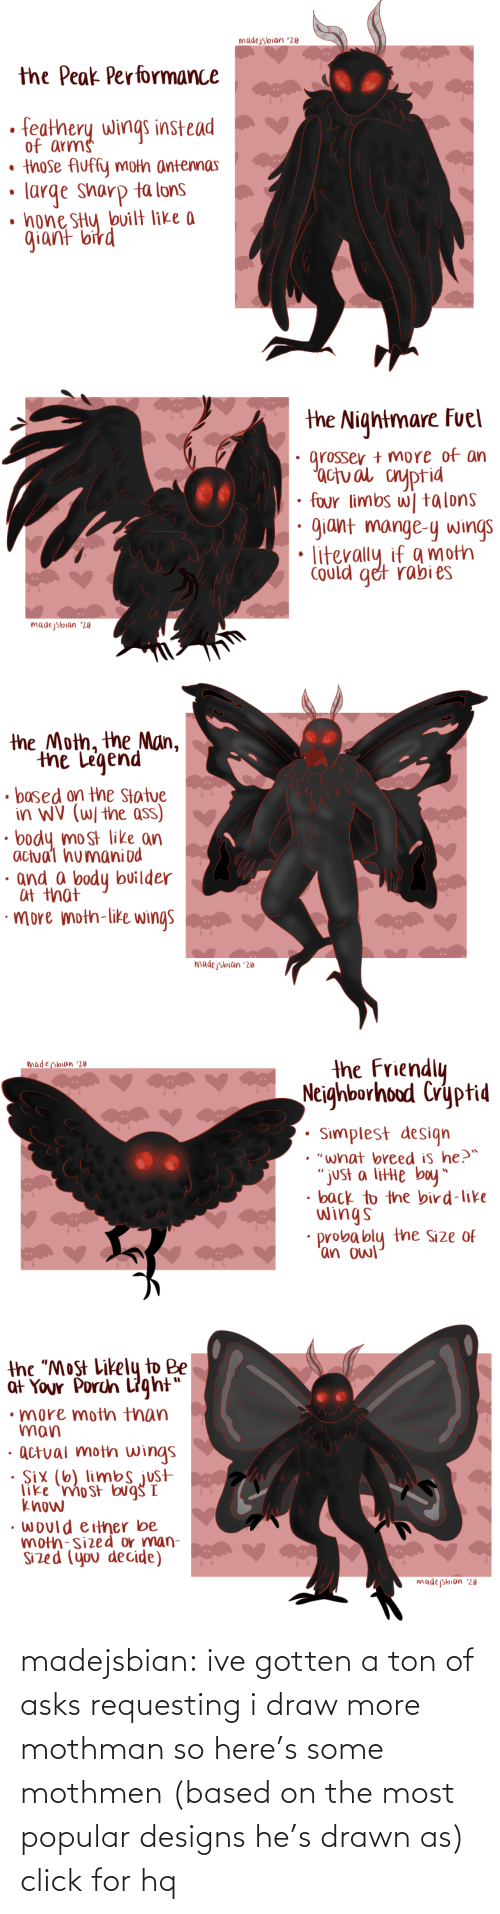 "Click, Tumblr, and Blog: madejsbian '20  the Peak Performance  feathery wings instead  of arms  • those Auffy moth antennas  large sharp ta lons  • hone SHy bvilt like a  giant bird   the Nightmare Fuel  grosser + more of an  'actual cnyptid  four limbs w| talons  giant mange-y wings  Could get rabi es  madejsbian '20   the Moth, the Man,  the Legend  • based on the Statue  in WV (W/ the ass)  body most like an  actual humaniod  · and a body builder  at that  ·more moth-like wings  madejsbian '20   the Friendly  Neighborhood Cryptid  madejsbian '20  Simplest design  • ""what breed is he?™  ""just a litte boy""  • back to the bird-like  wings  probably the Size of  'an owl   the ""Most Likely to Be  at Your Porch Light""  •more moth than  man  · actual moth wings  · Six (6) limbs just  like 'mo st bug I  know  • would either be  moth-sized or man-  Sized (you decide)  madejsbian '20 madejsbian: ive gotten a ton of asks requesting i draw more mothman so here's some mothmen (based on the most popular designs he's drawn as)